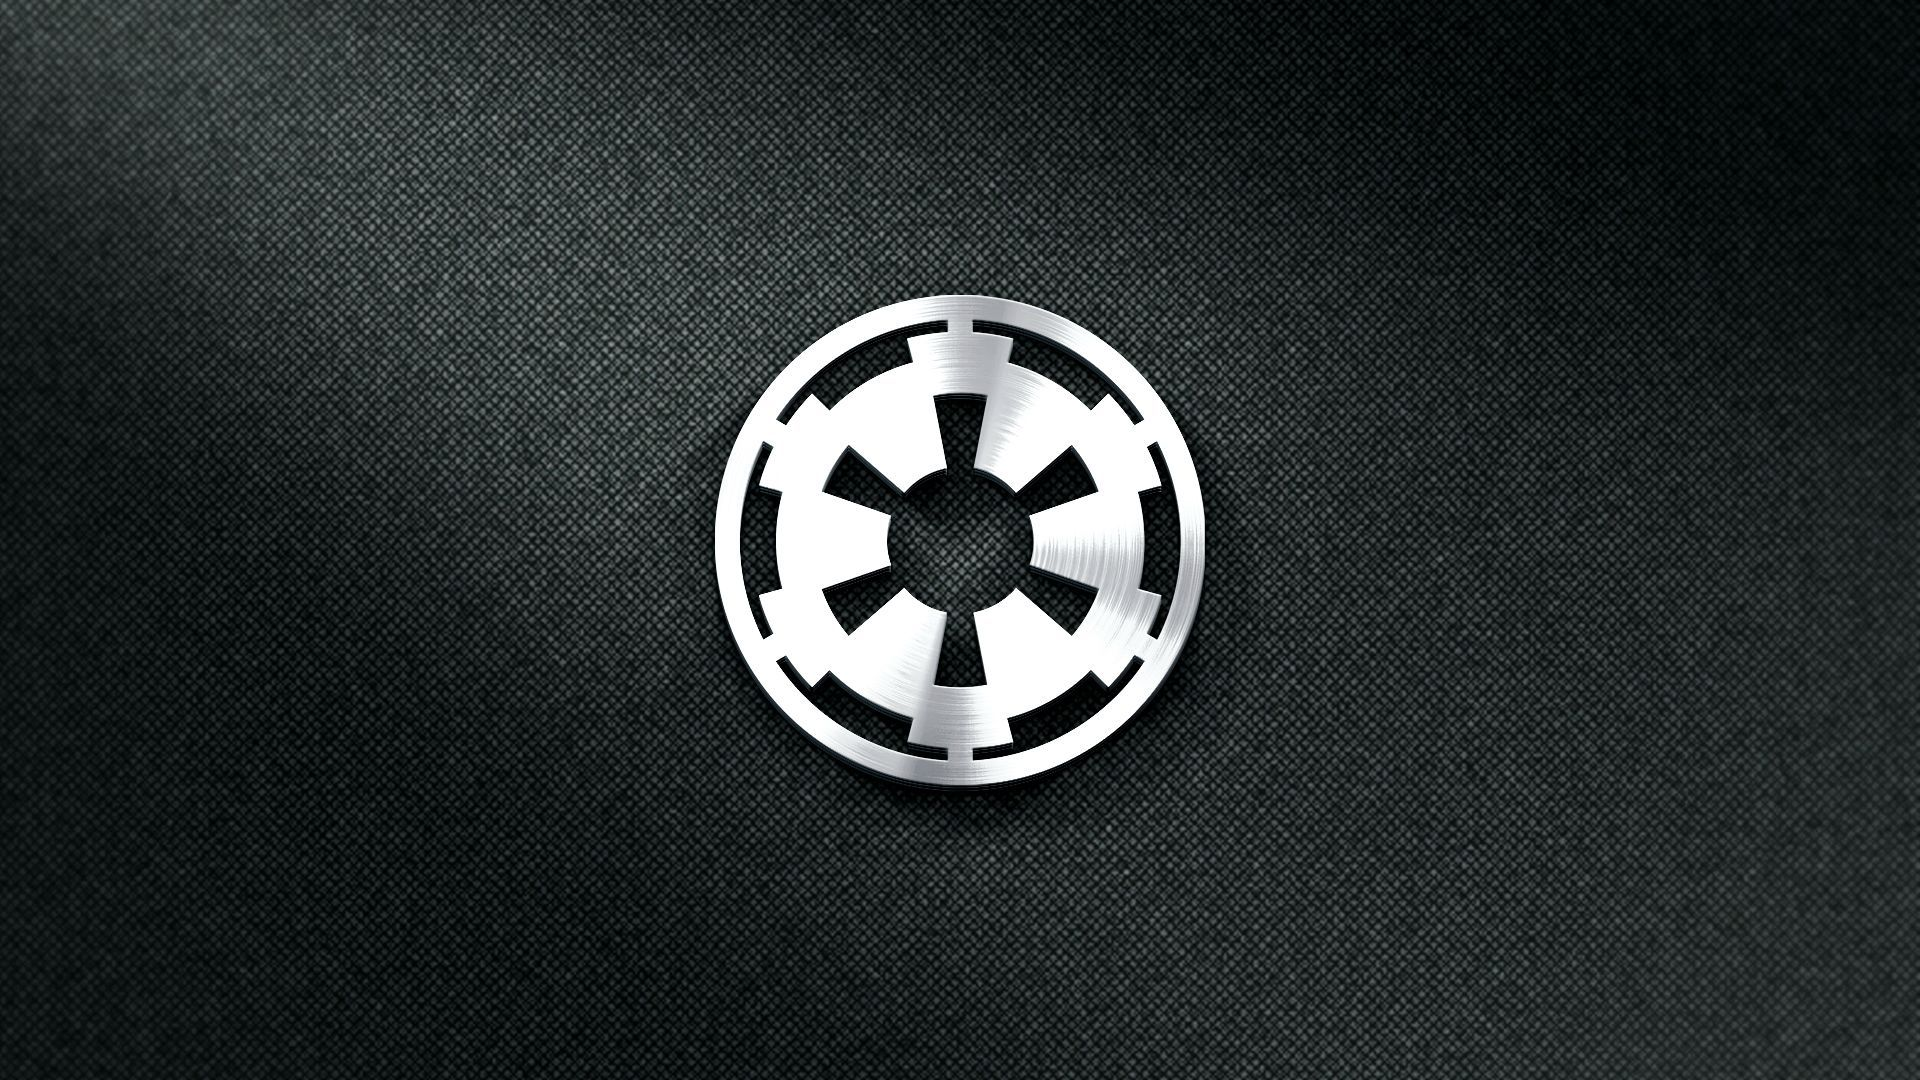 Star Wars Galactic Empire Wallpaper